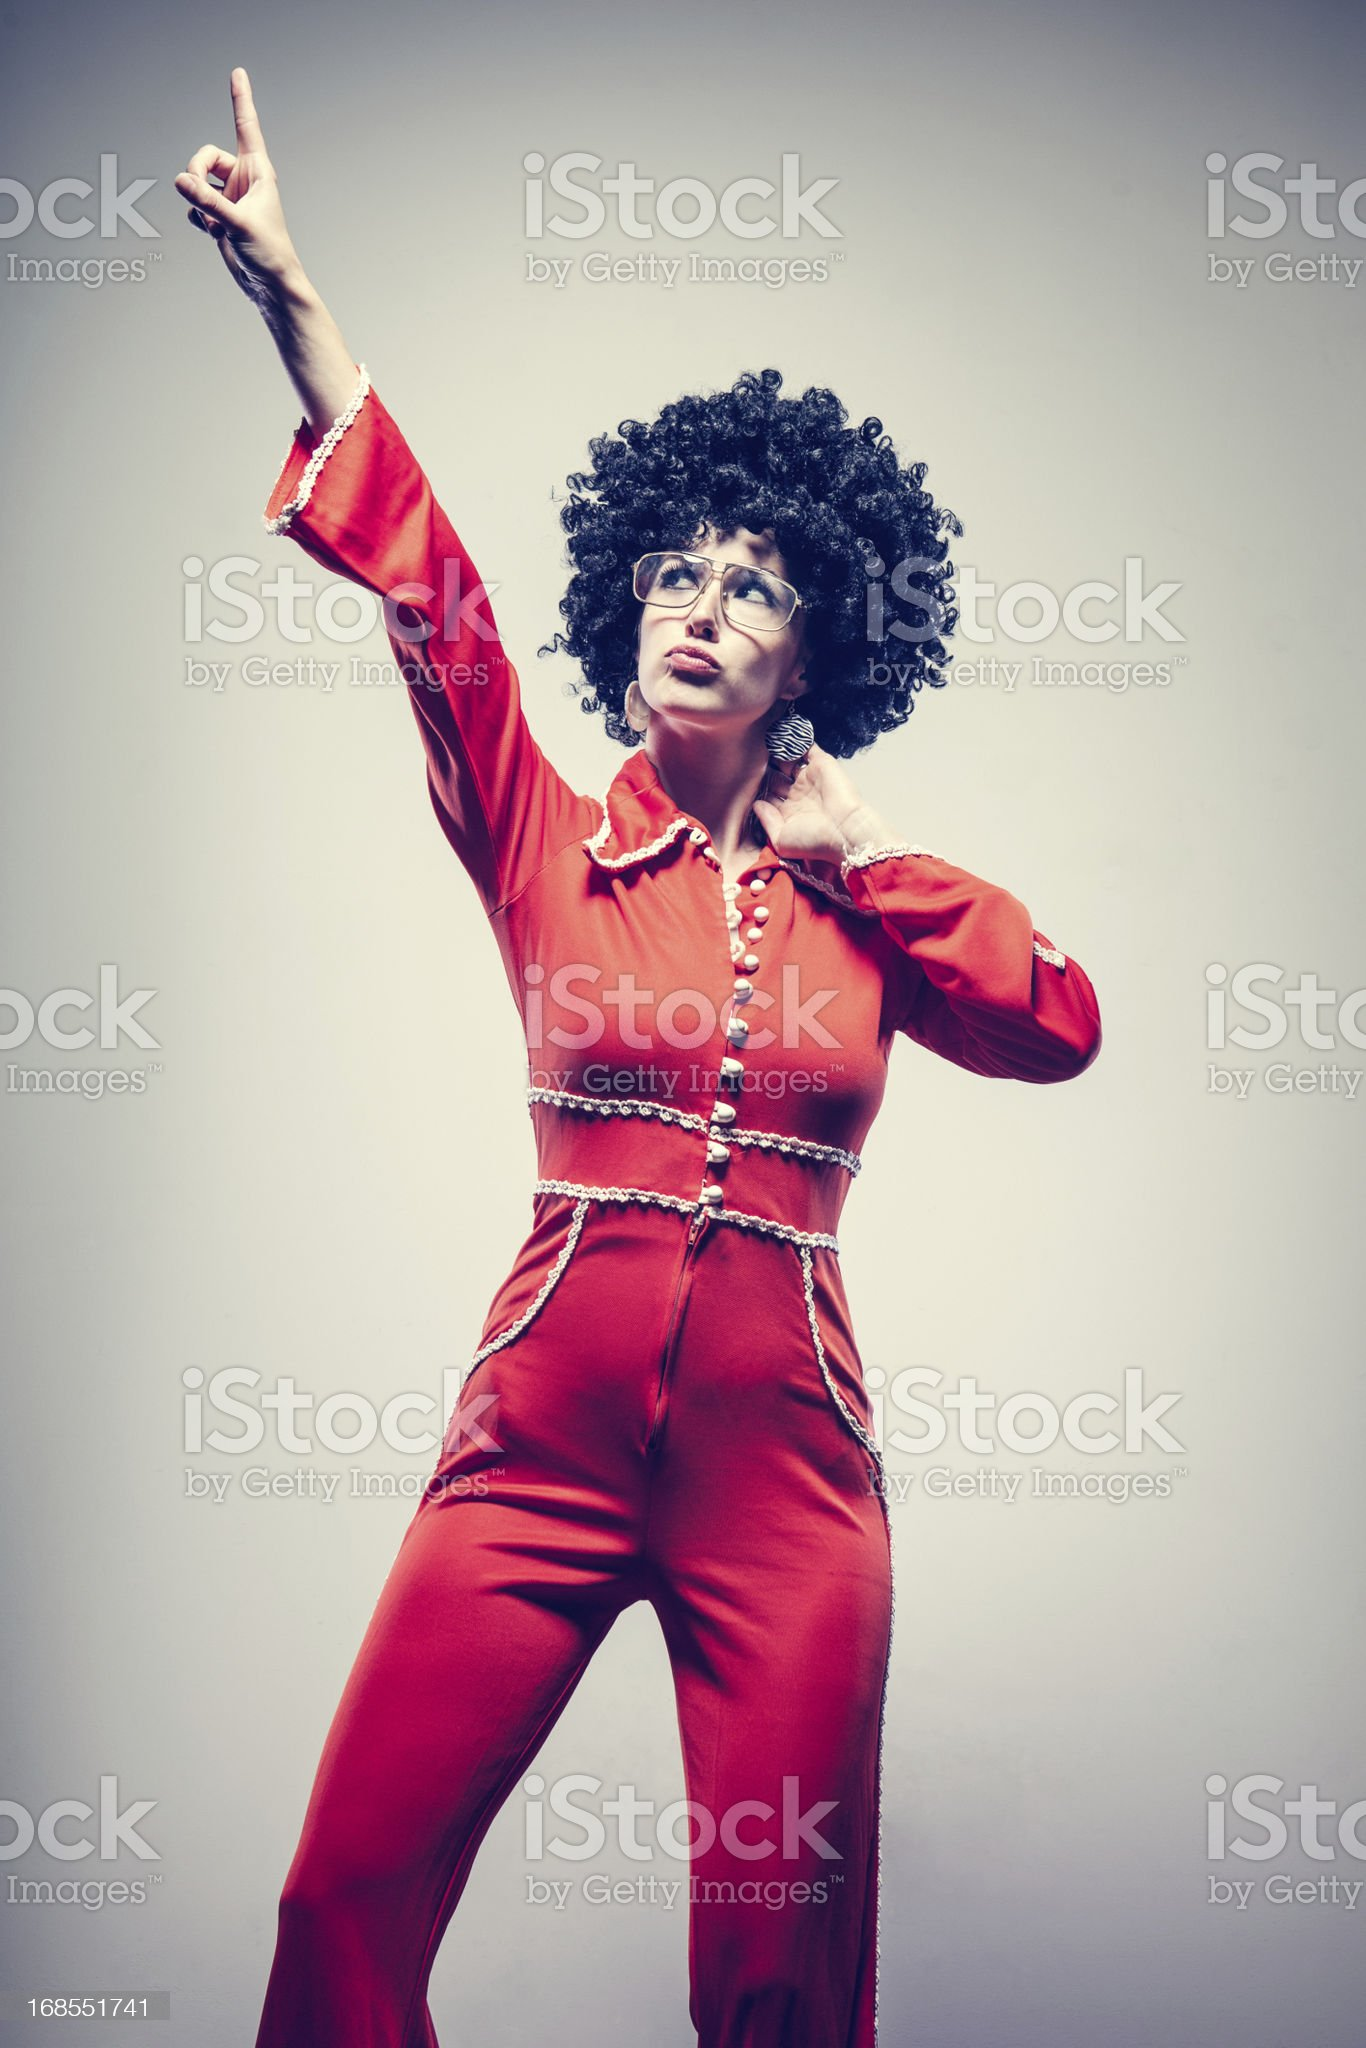 Afro Disco Dancer with Jumpsuit royalty-free stock photo